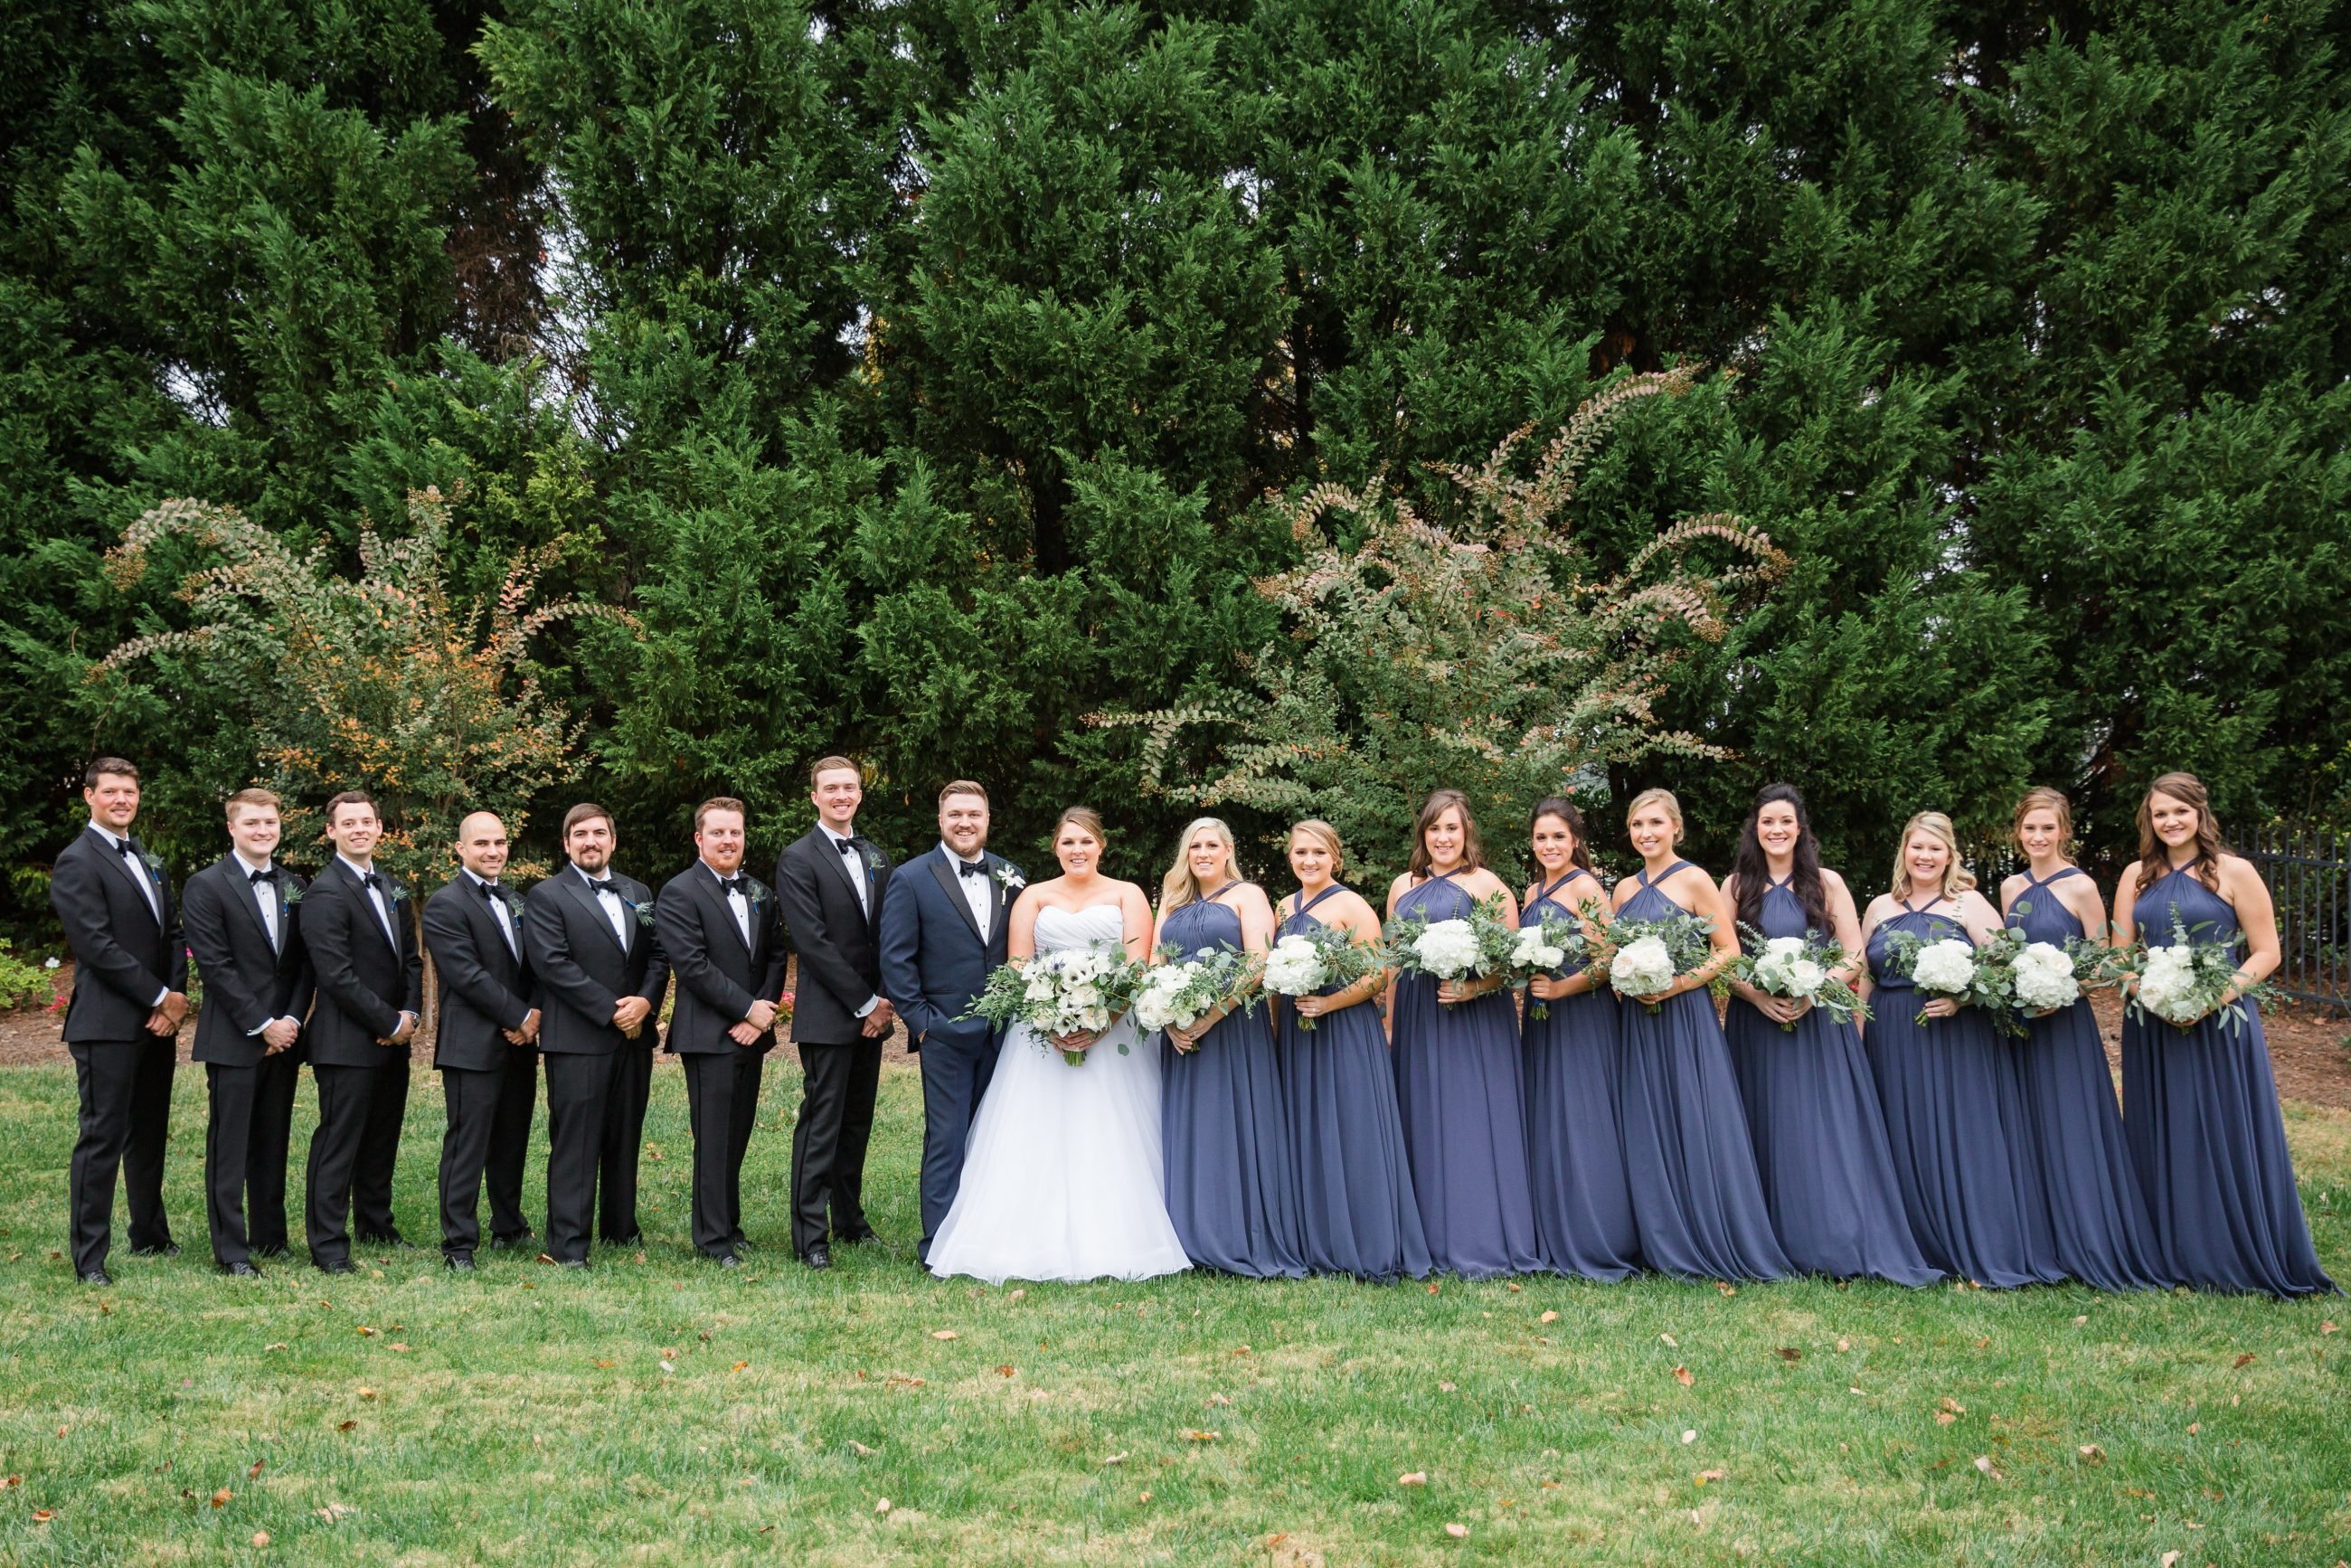 Bridal Party with bridesmaids in dusty blue bridesmaids dresses outside pictured captured by Samantha Laffoon Photogrpahy